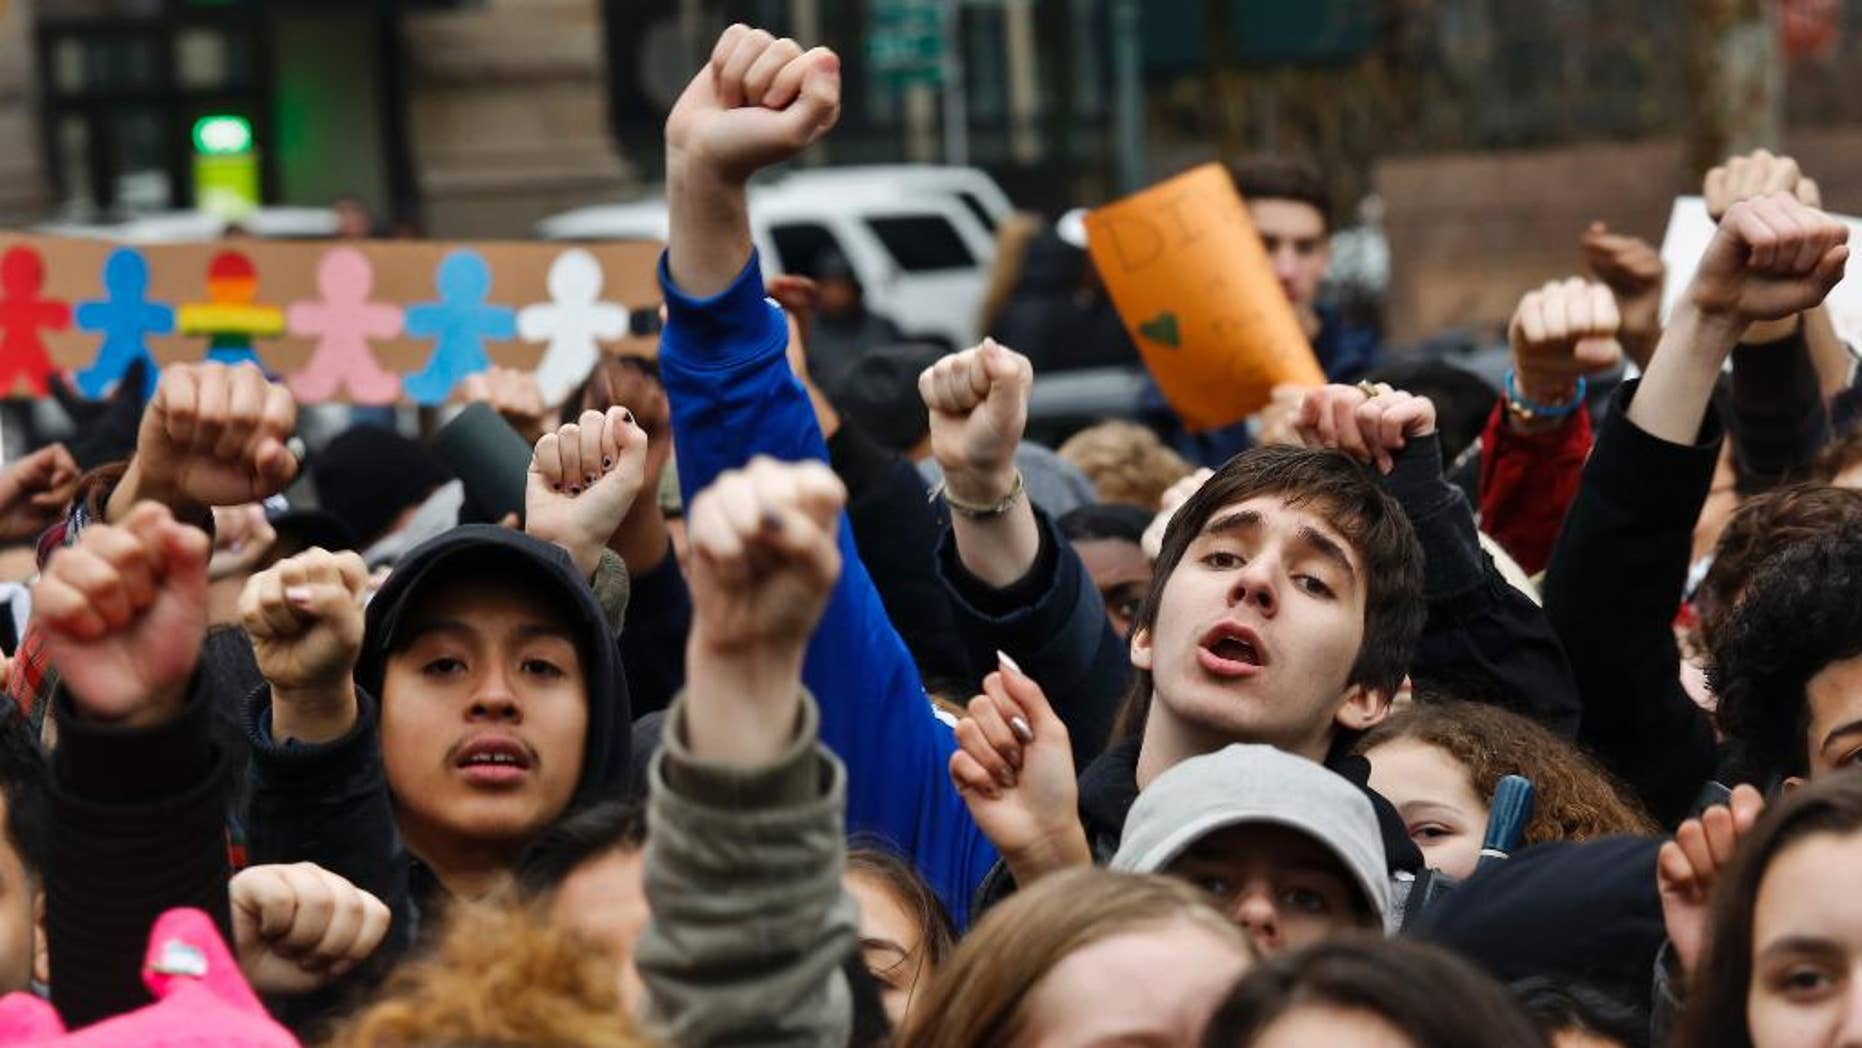 Students from high schools and colleges throughout New York city protest with clenched fists, during a rally against President Donald Trump's executive order banning travel from seven Muslim-majority nations, Tuesday Feb. 7, 2017, in New York's Foley Square. (AP Photo/Bebeto Matthews)